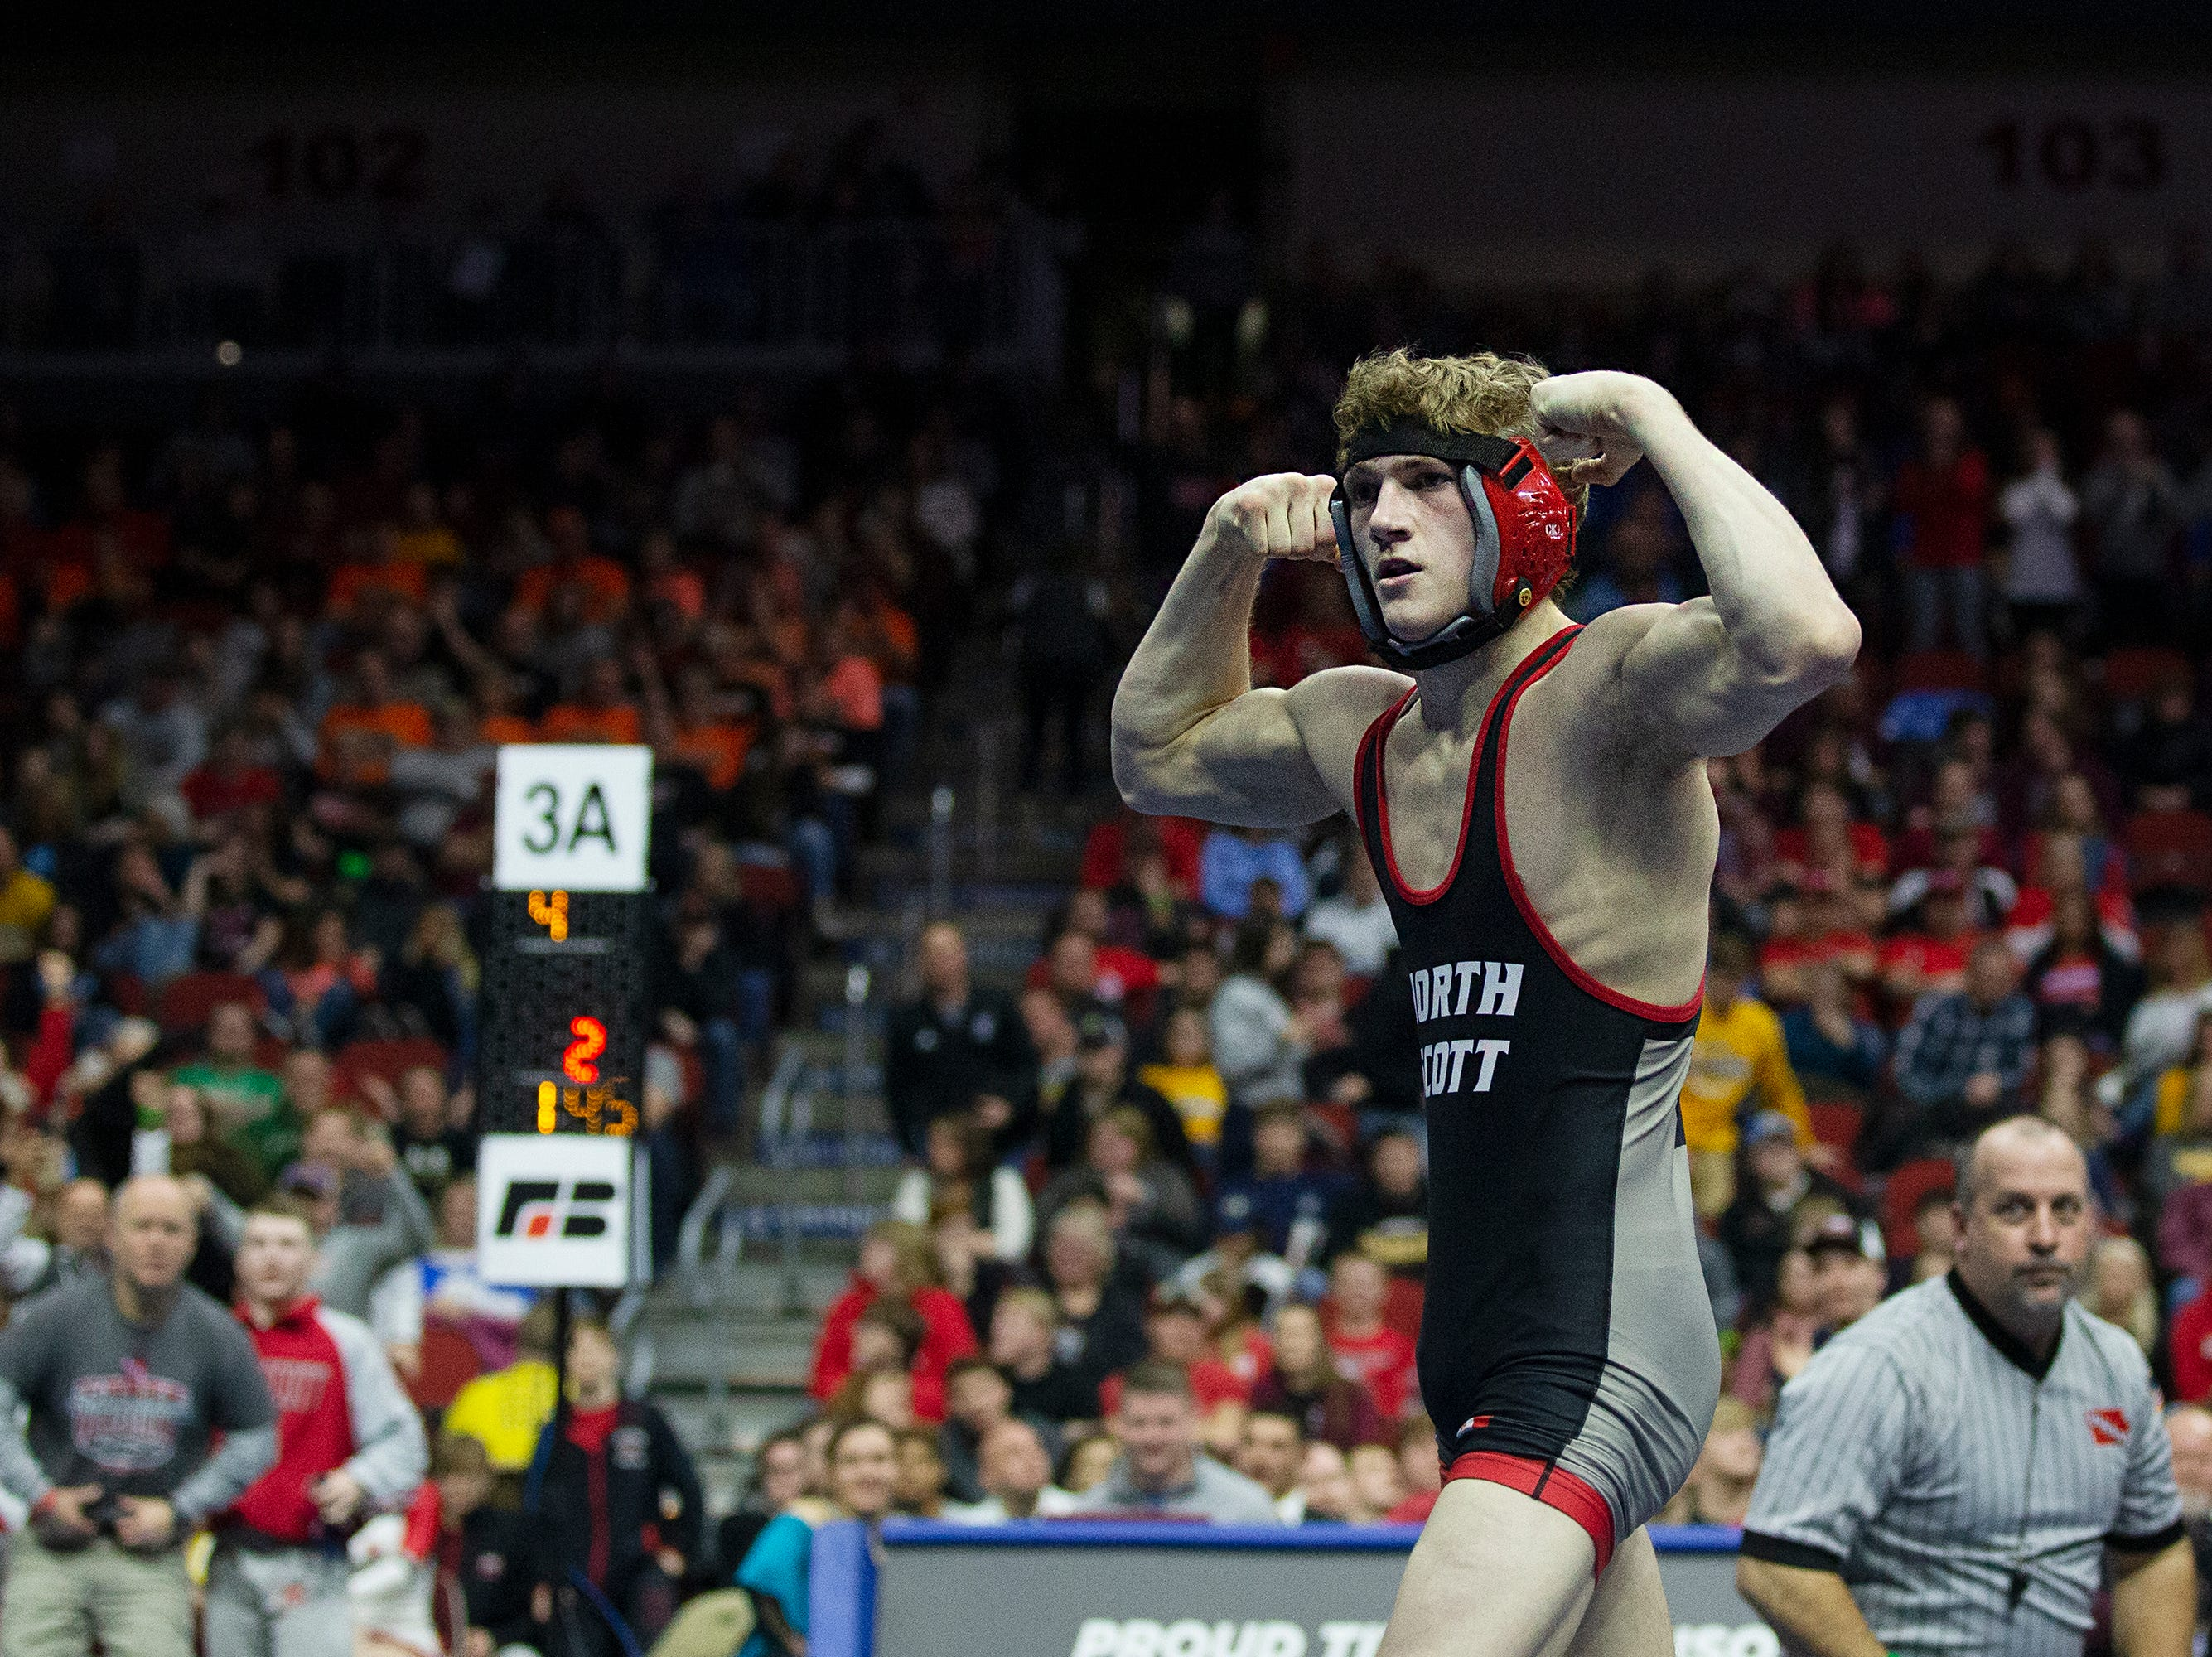 North Scott's Collin Lewis wins the 145 pound Class 3A championship match against Ankeny Centennial's Eric Owens during the Iowa high school state wrestling tournament on Saturday, Feb. 16, 2019, in Wells Fargo Arena.